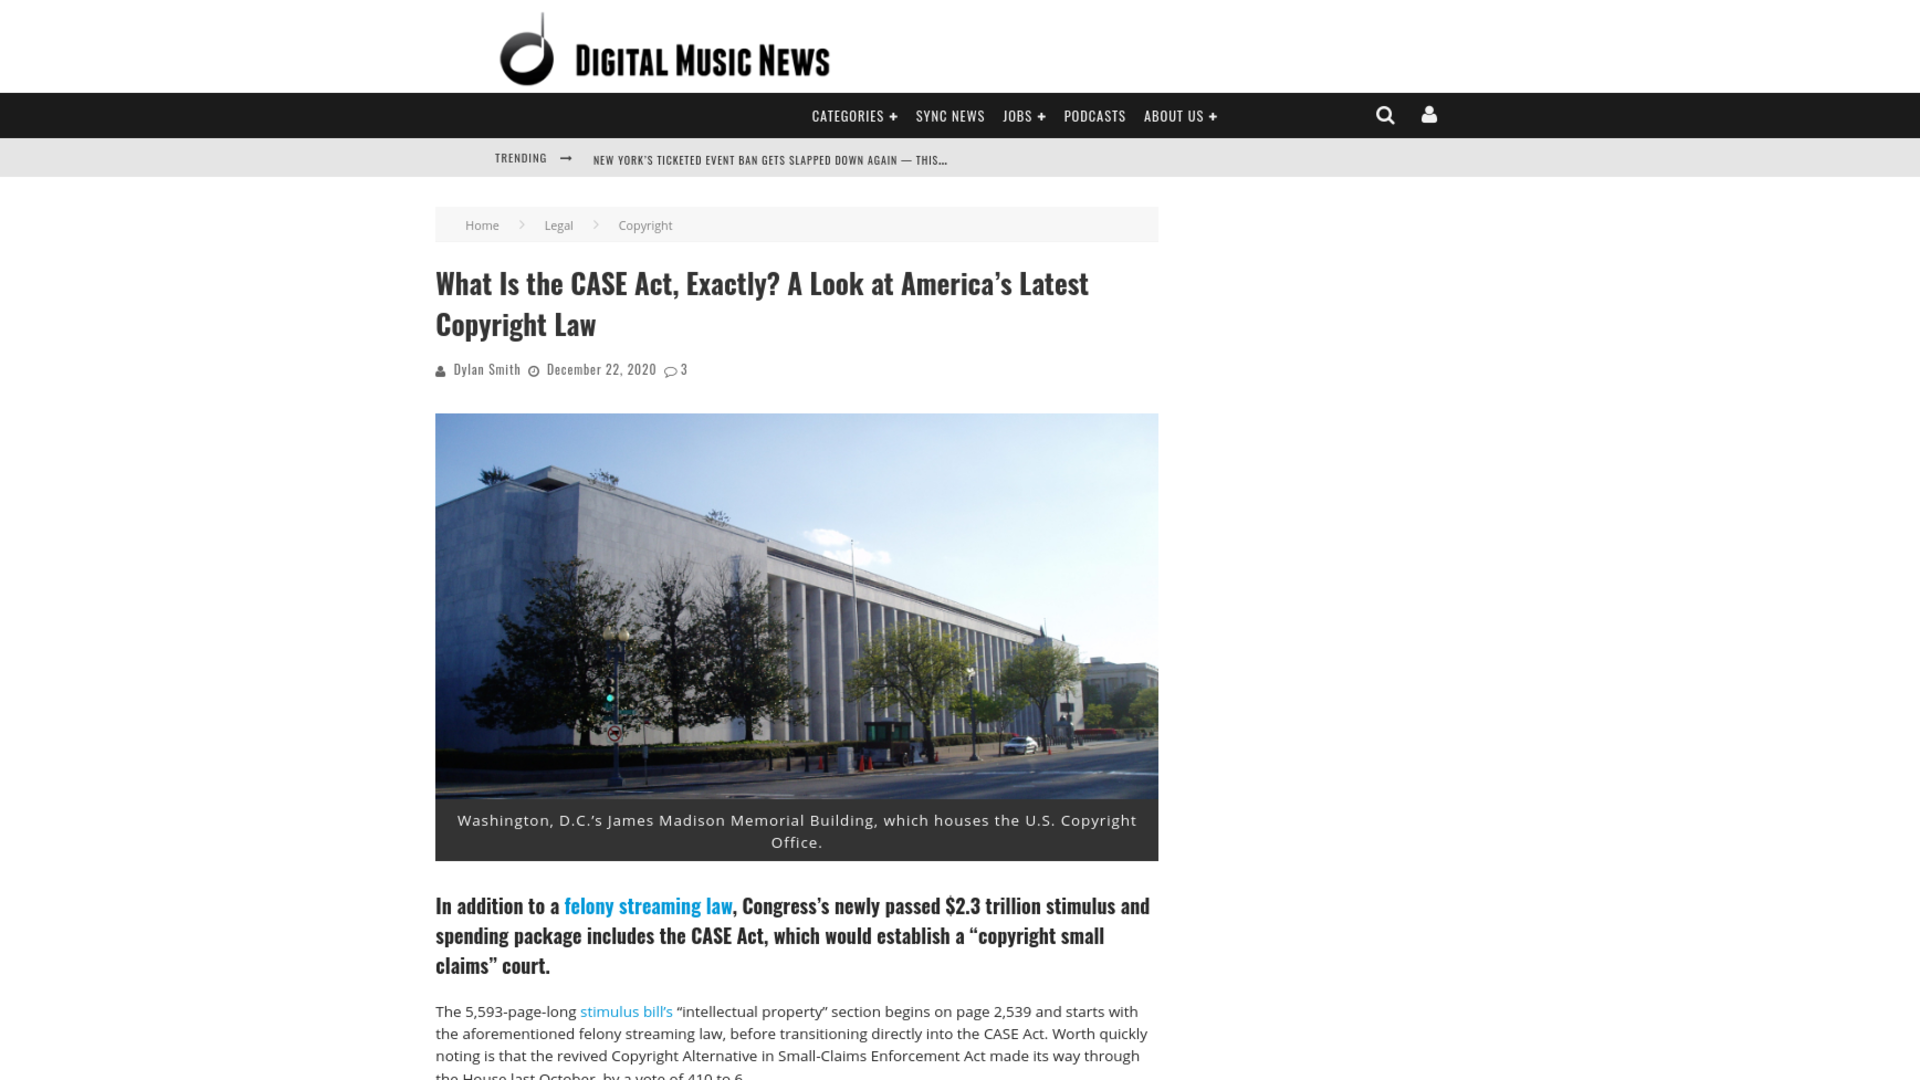 Fairness Rocks News What Is the CASE Act, Exactly? A Look at America's Latest Copyright Law